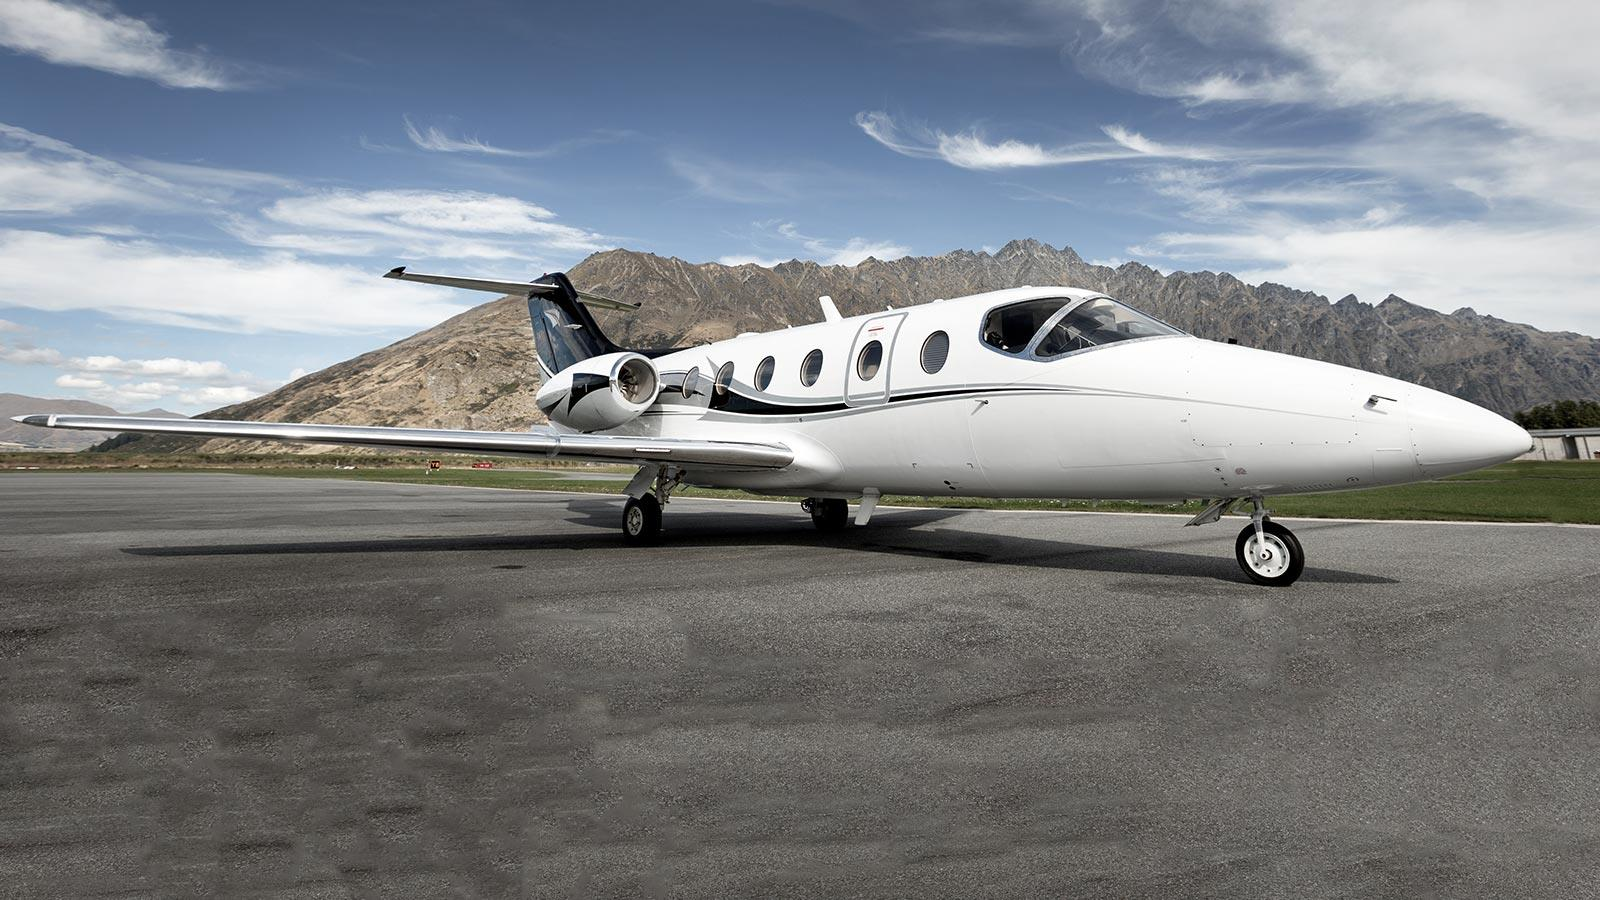 Charter Flights  Helicopter  Private Jet  Luxury Travel  New Zealand